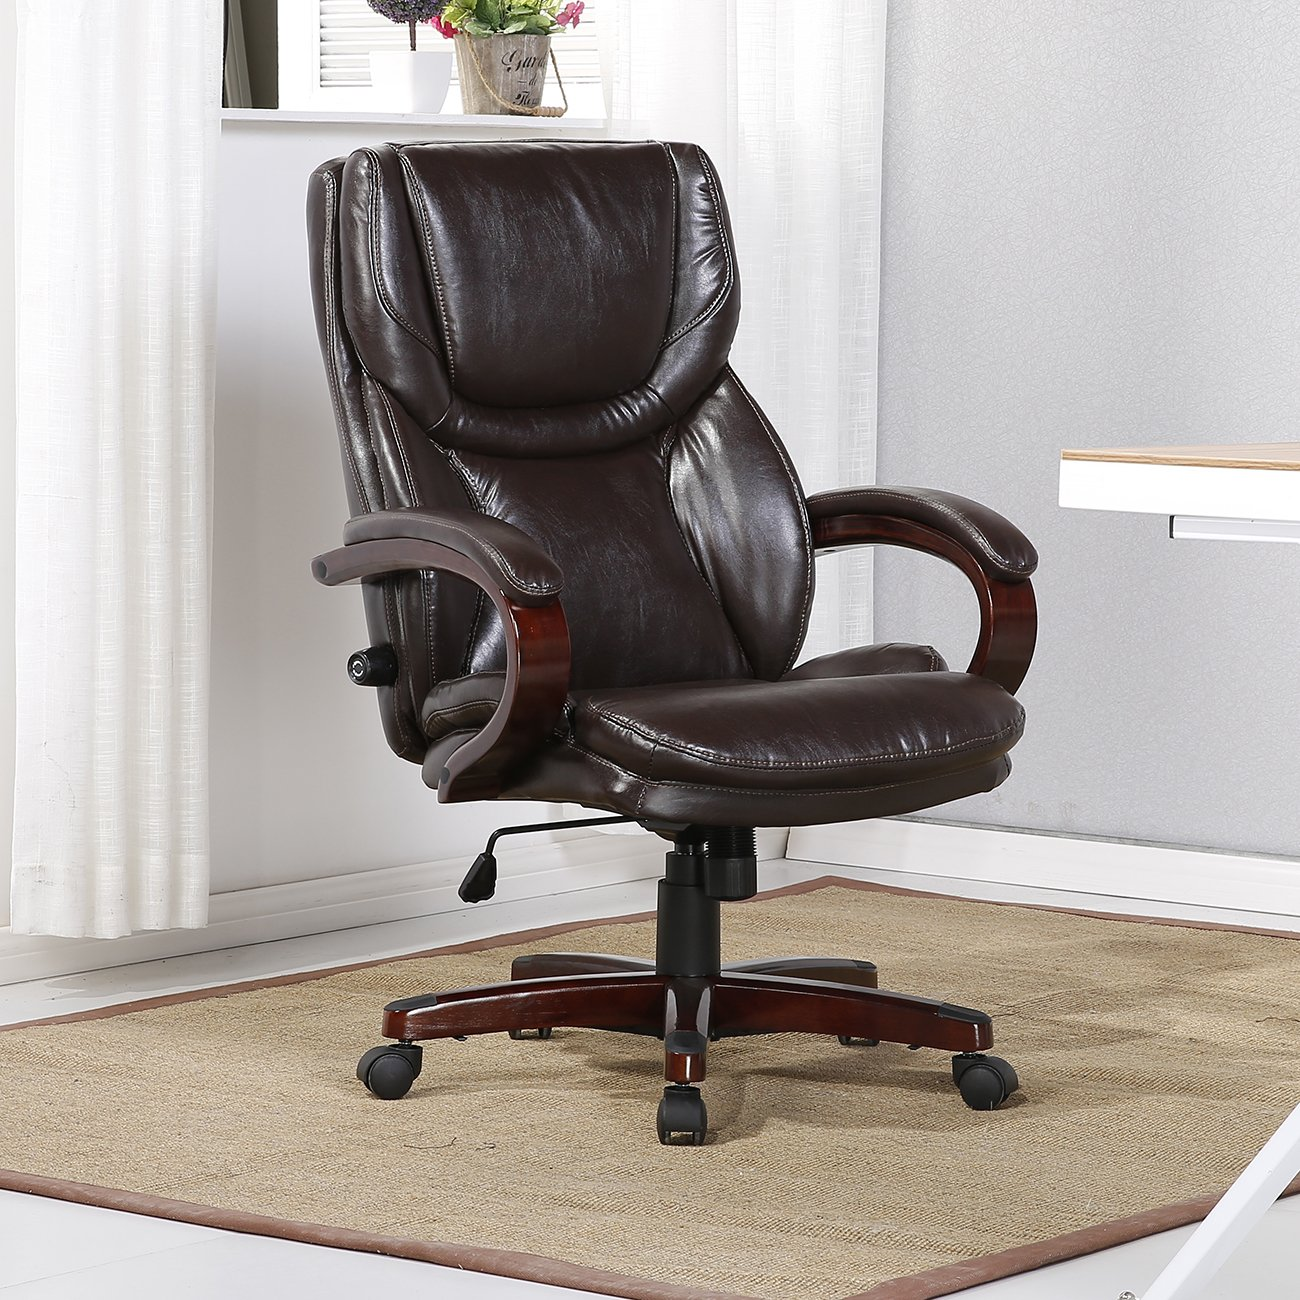 Belleze Leather Executive Office Chair w/Adjustable Lumbar Support Height Swivel Wood Armrest Base, Brown by Belleze